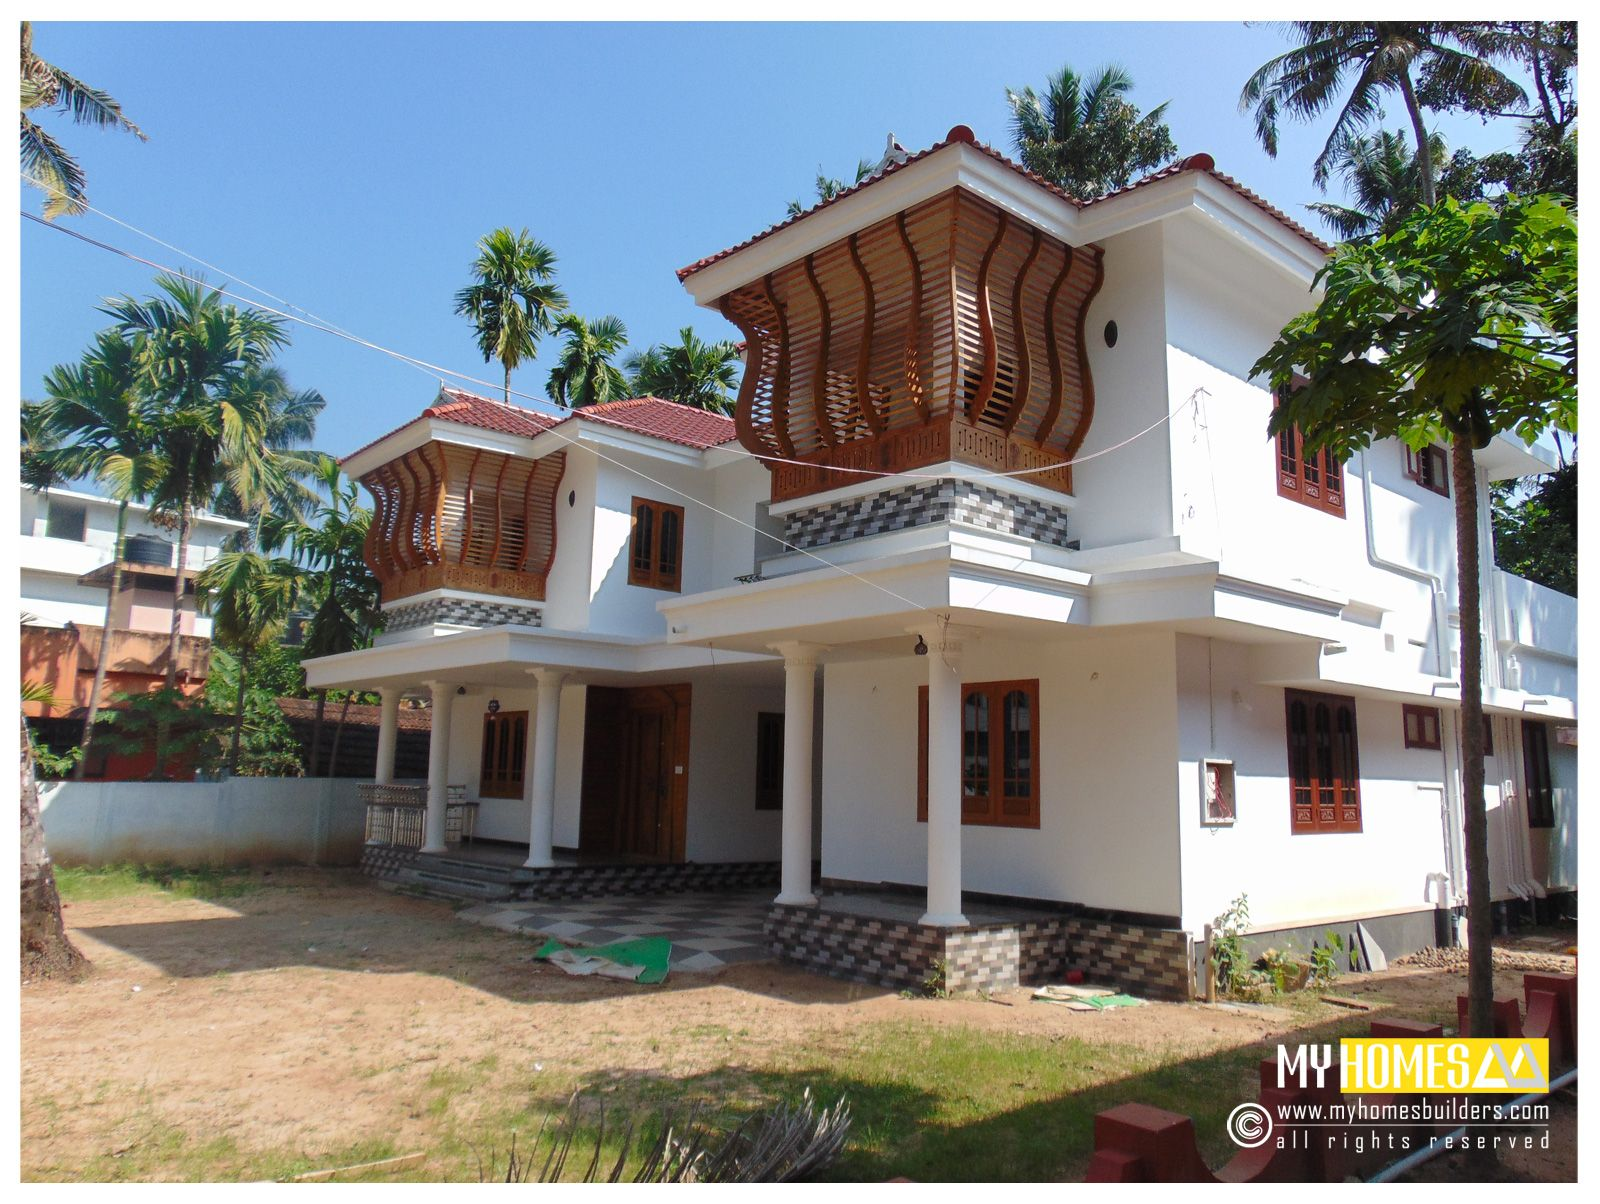 Kerala Traditional Homes designs 2850 sq ft Kerala traditional